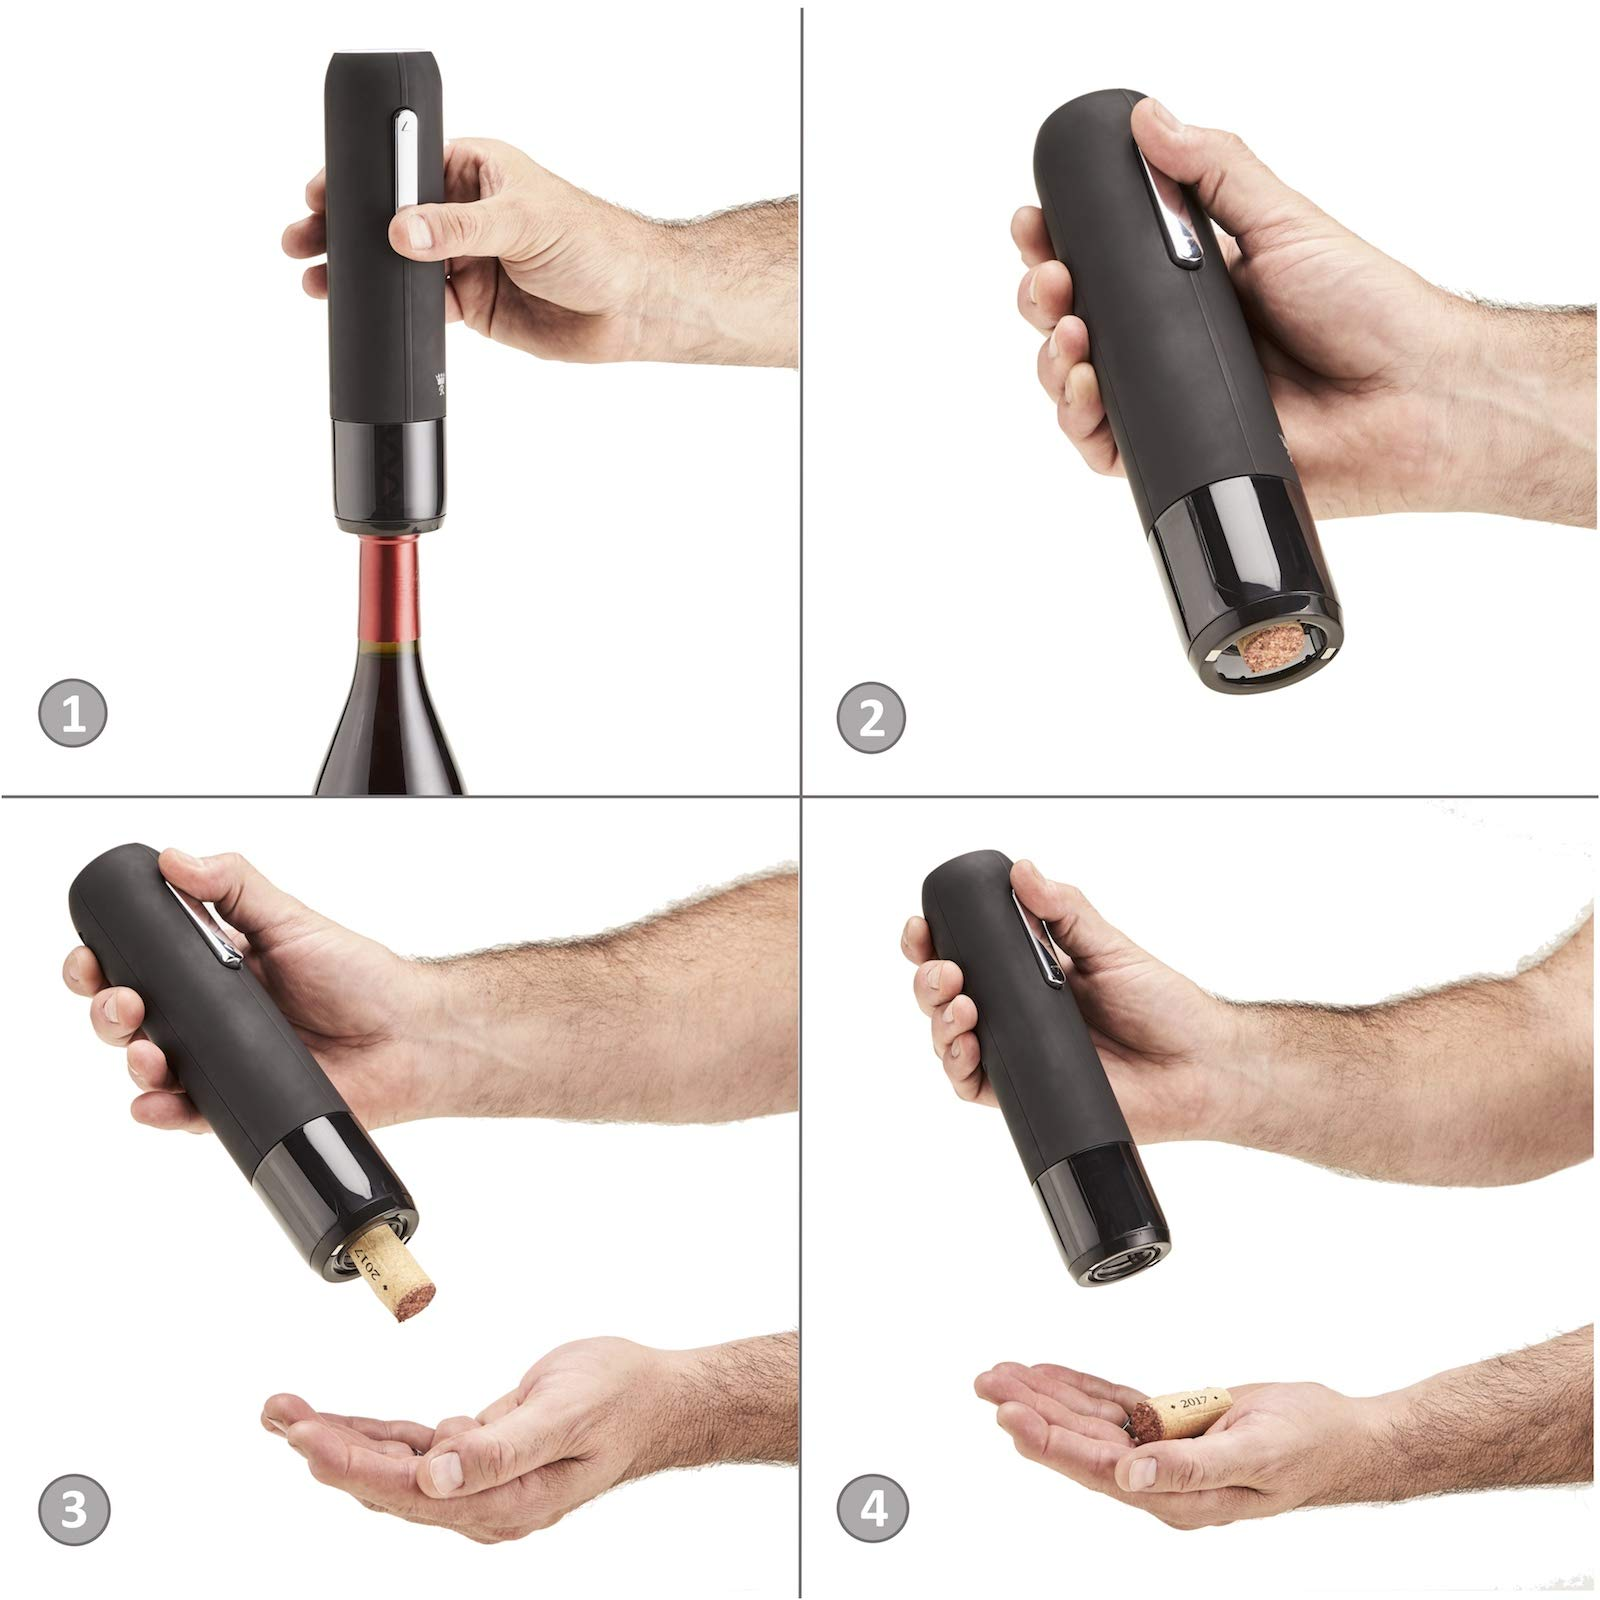 Royaluxe - Deluxe 7 Piece Electric Wine Opener Gift Set | Rechargeable Wine Bottle Opener with Aerator, Premium Wine Preservation Vacuum System, 2 Bottle Stoppers, Foil Cutter & Charging Base | Elegant Matte Black Finish with Stainless Steel Accents by Royaluxe (Image #4)